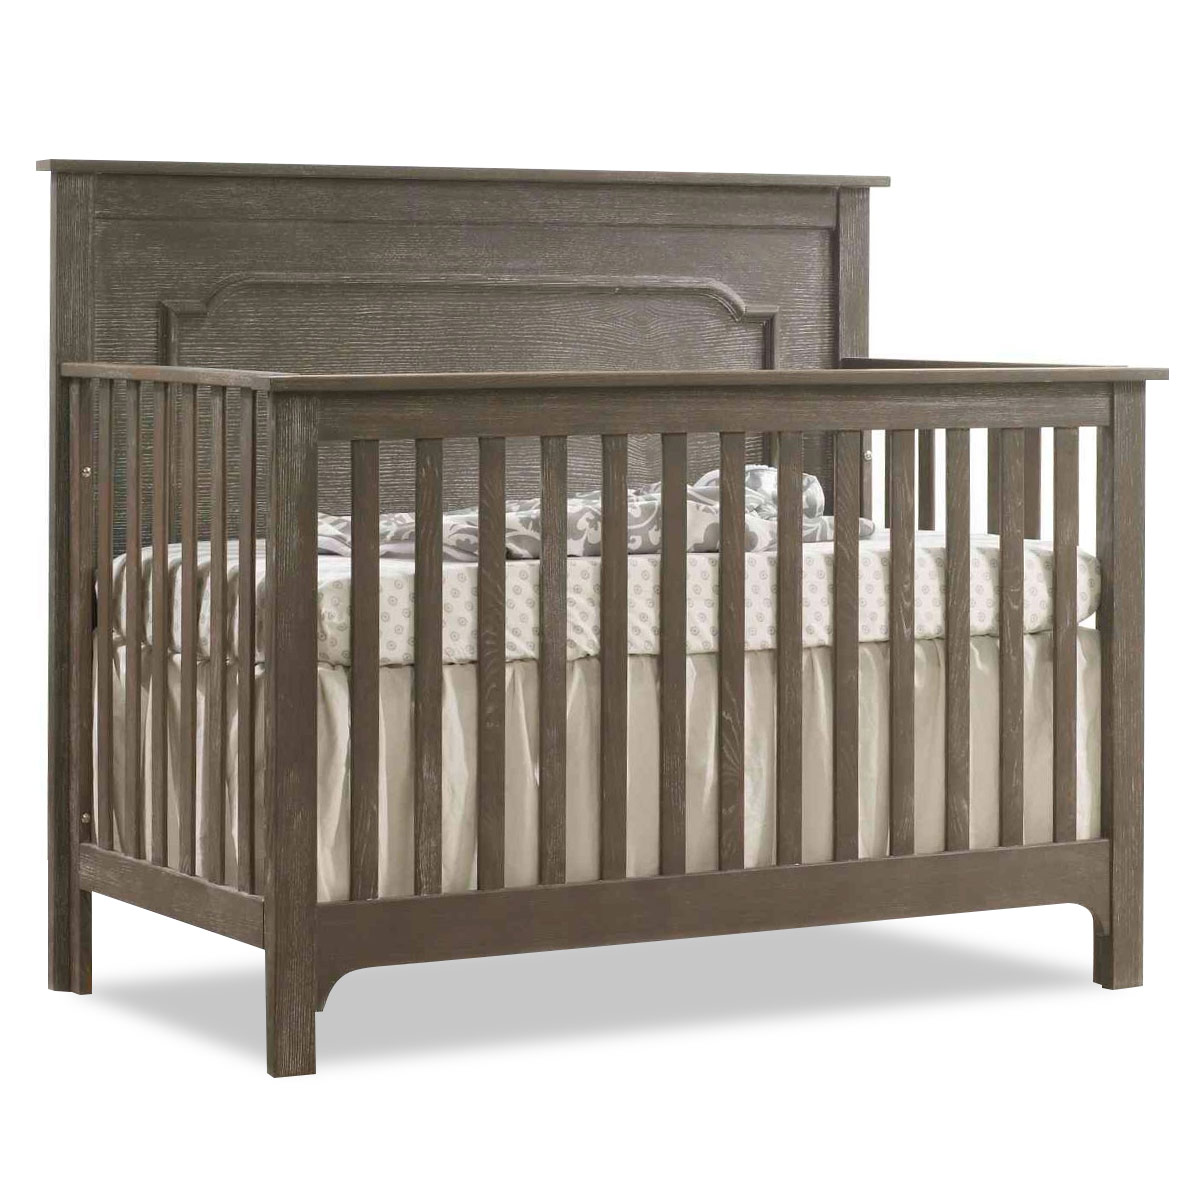 Nest juvenile emerson 5 in 1 convertible crib ideal baby for 5 in 1 bed